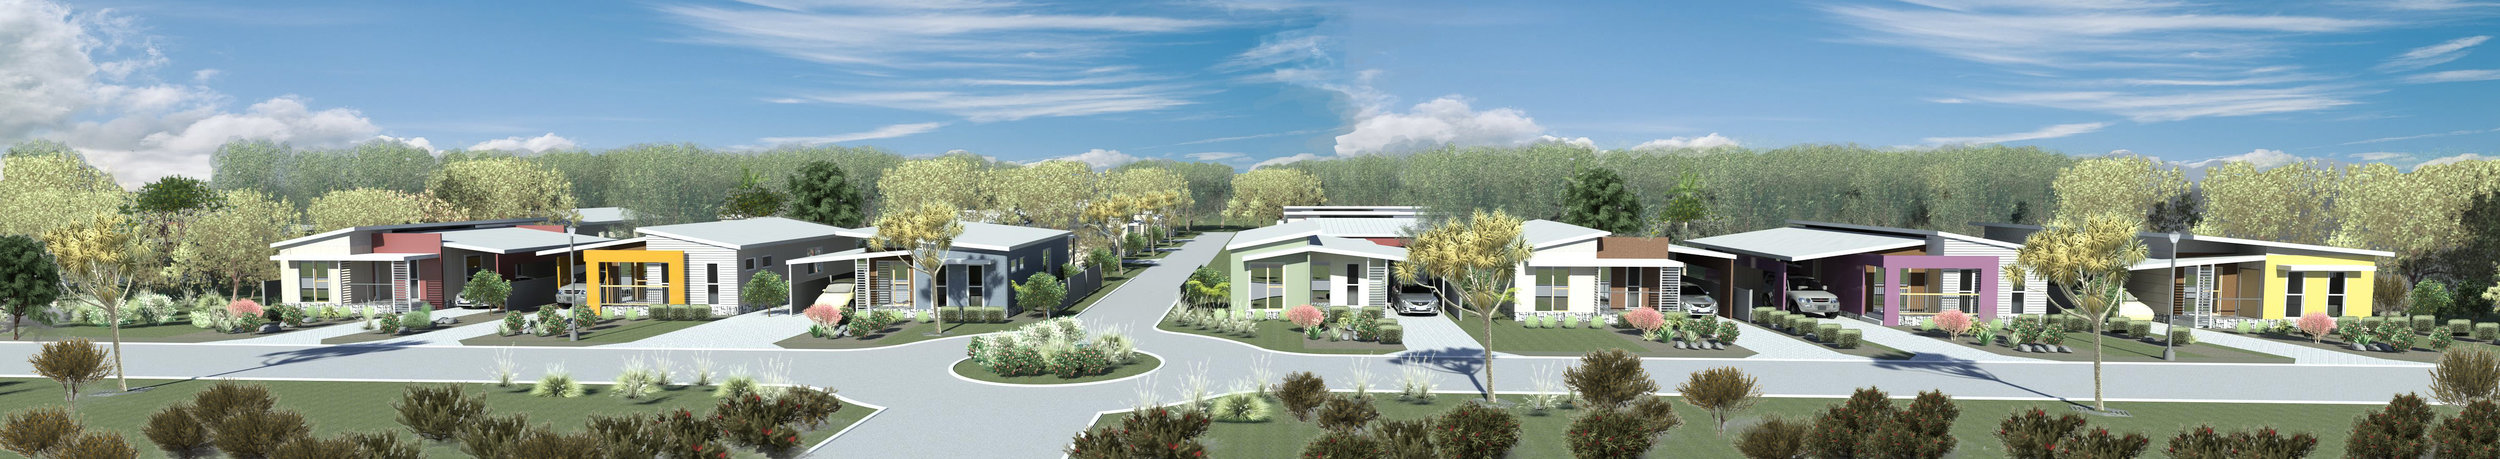 Residential Lifestyle Villages can enhance the locality and provide quality affordable housing.